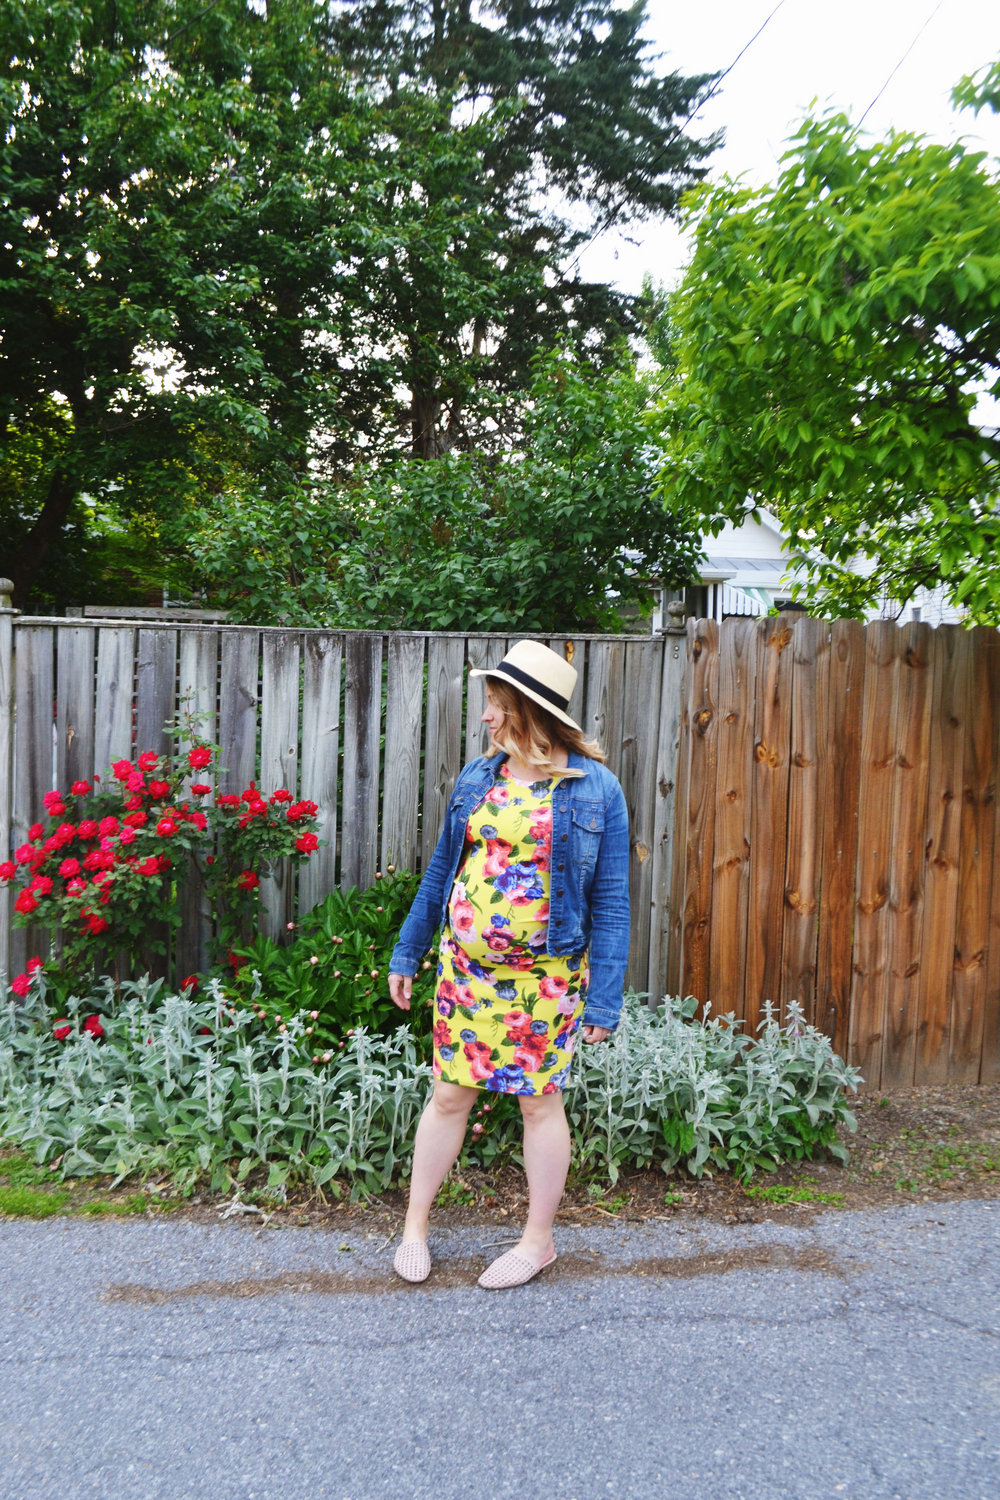 Dressing the Bump - Flower Power 3 | Maternity Style | BySarahRae.com